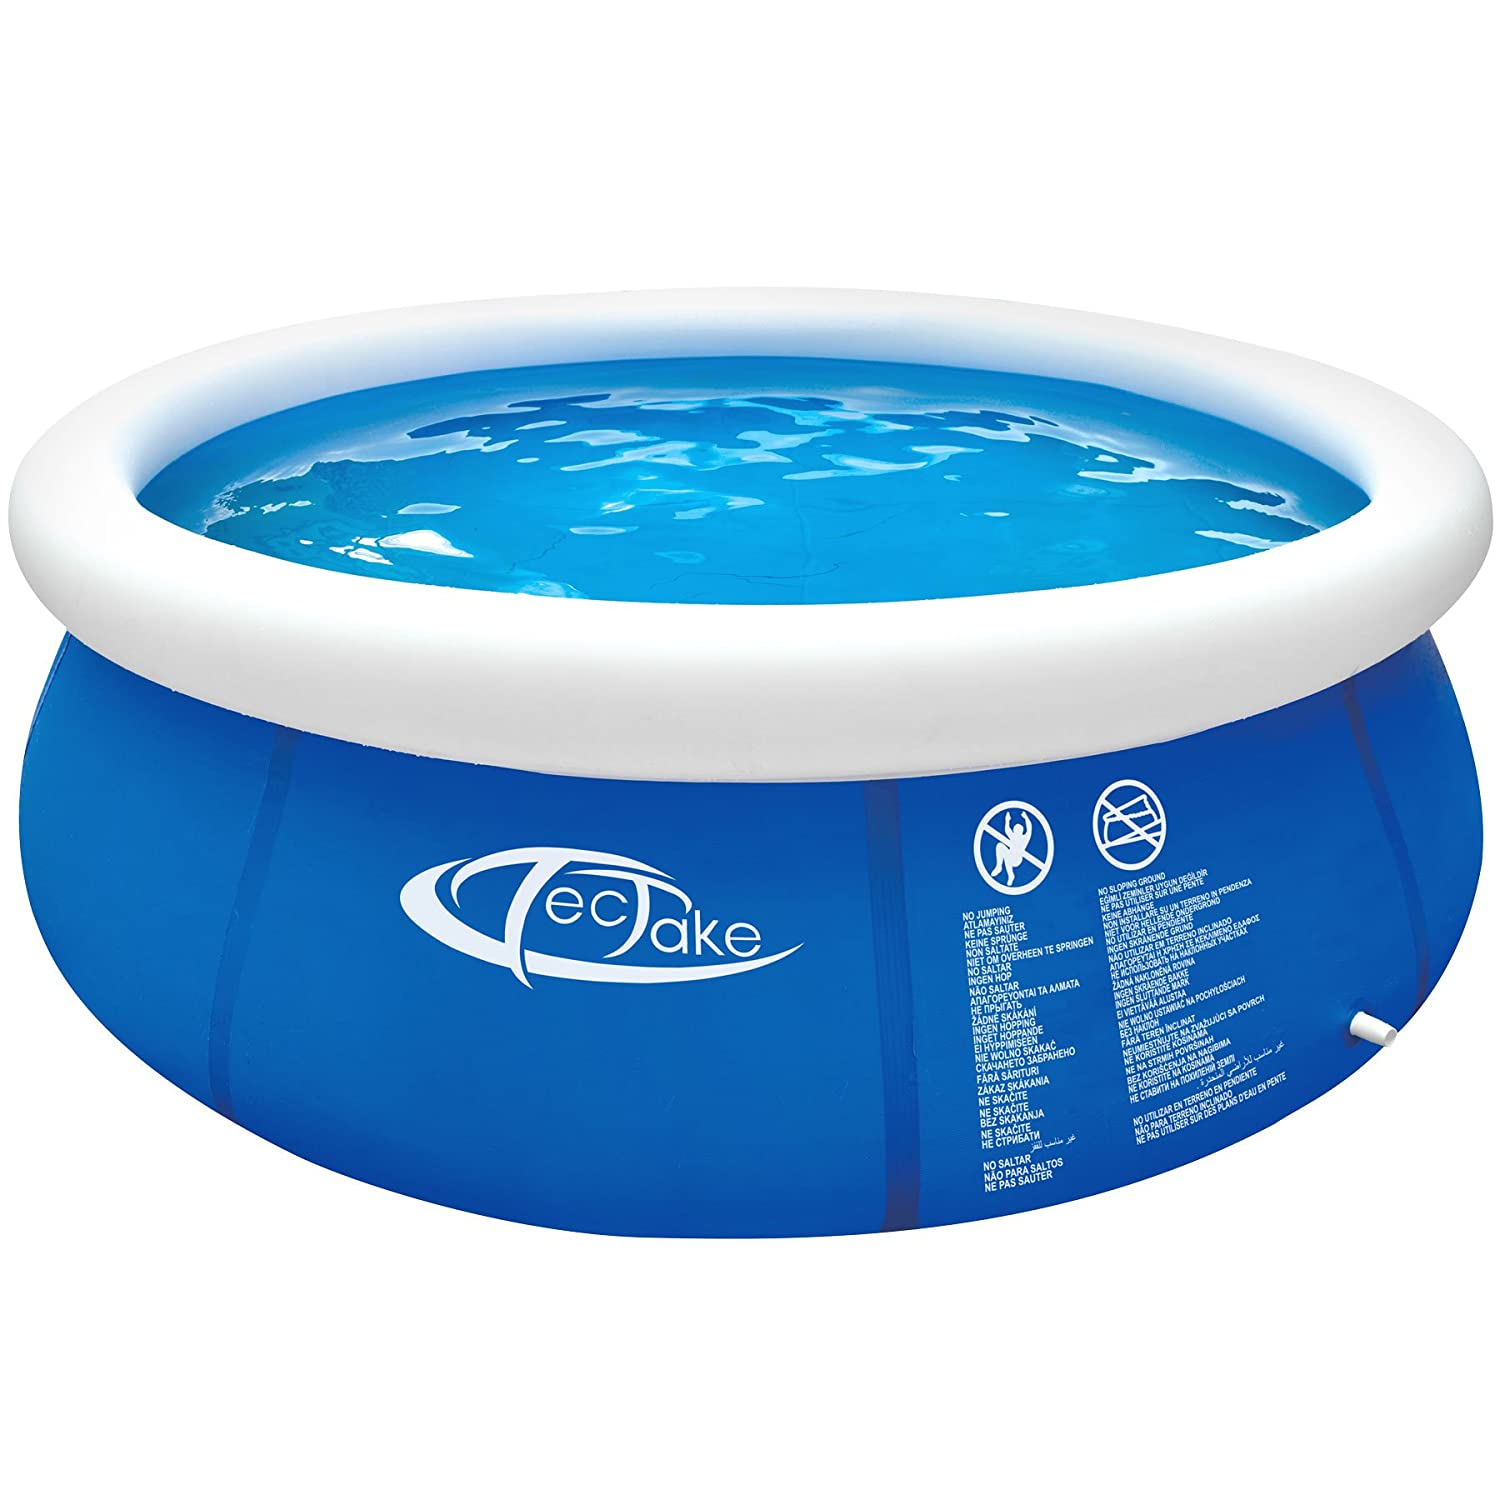 TecTake 800580 - Swimming Pool, Easy to assemble and disassemble, Robust and strong Foil - different Models (Typ 1 | No. 402894)